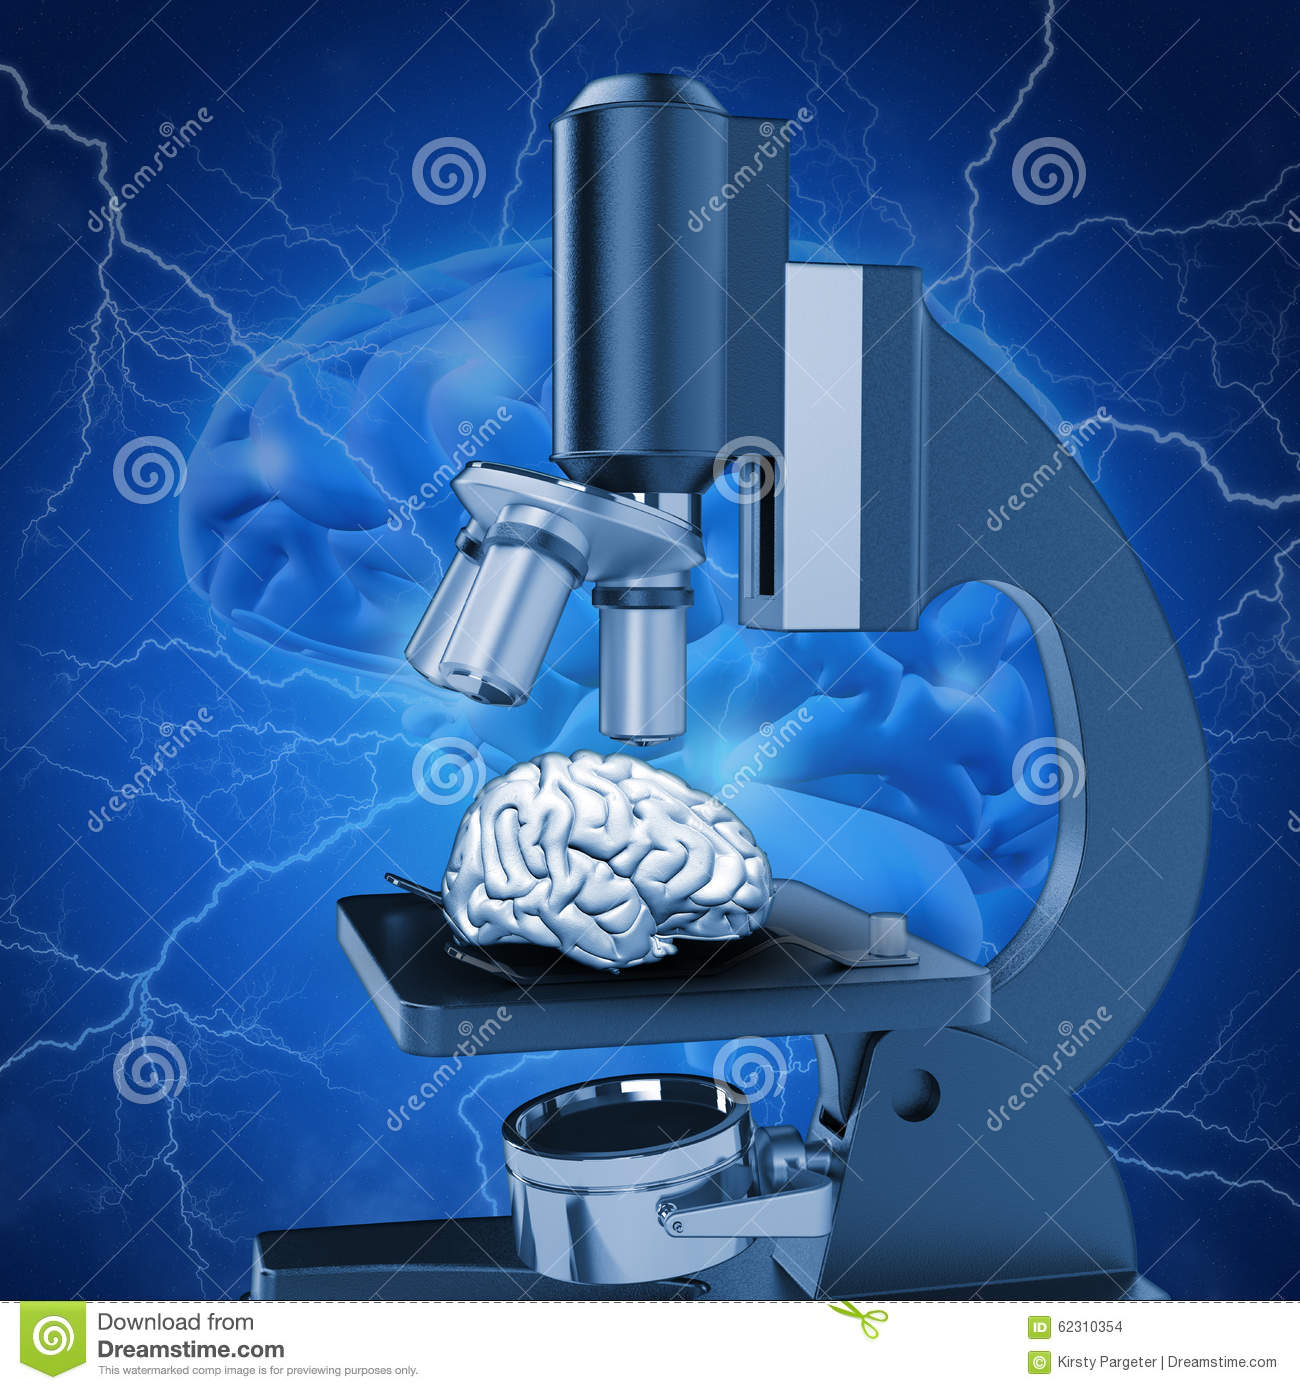 alzheimers paper research